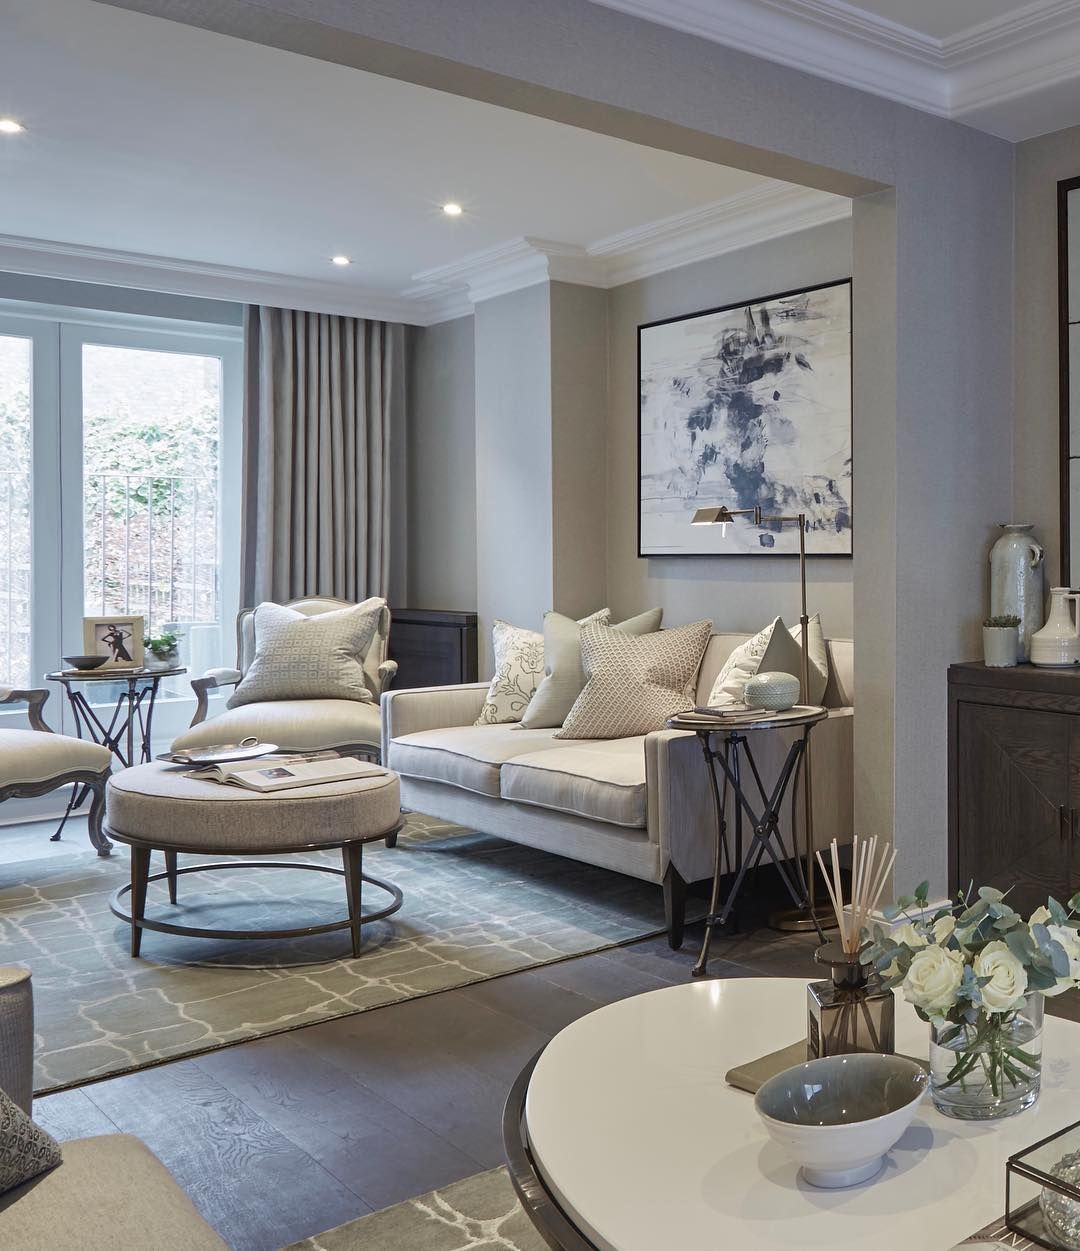 Sophie Paterson On Instagram Chelsea Townhouse Sitting Room With Taupe And C Che In 2020 Living Room Color Schemes Taupe Living Room Living Room Dining Room Combo #taupe #and #grey #living #room